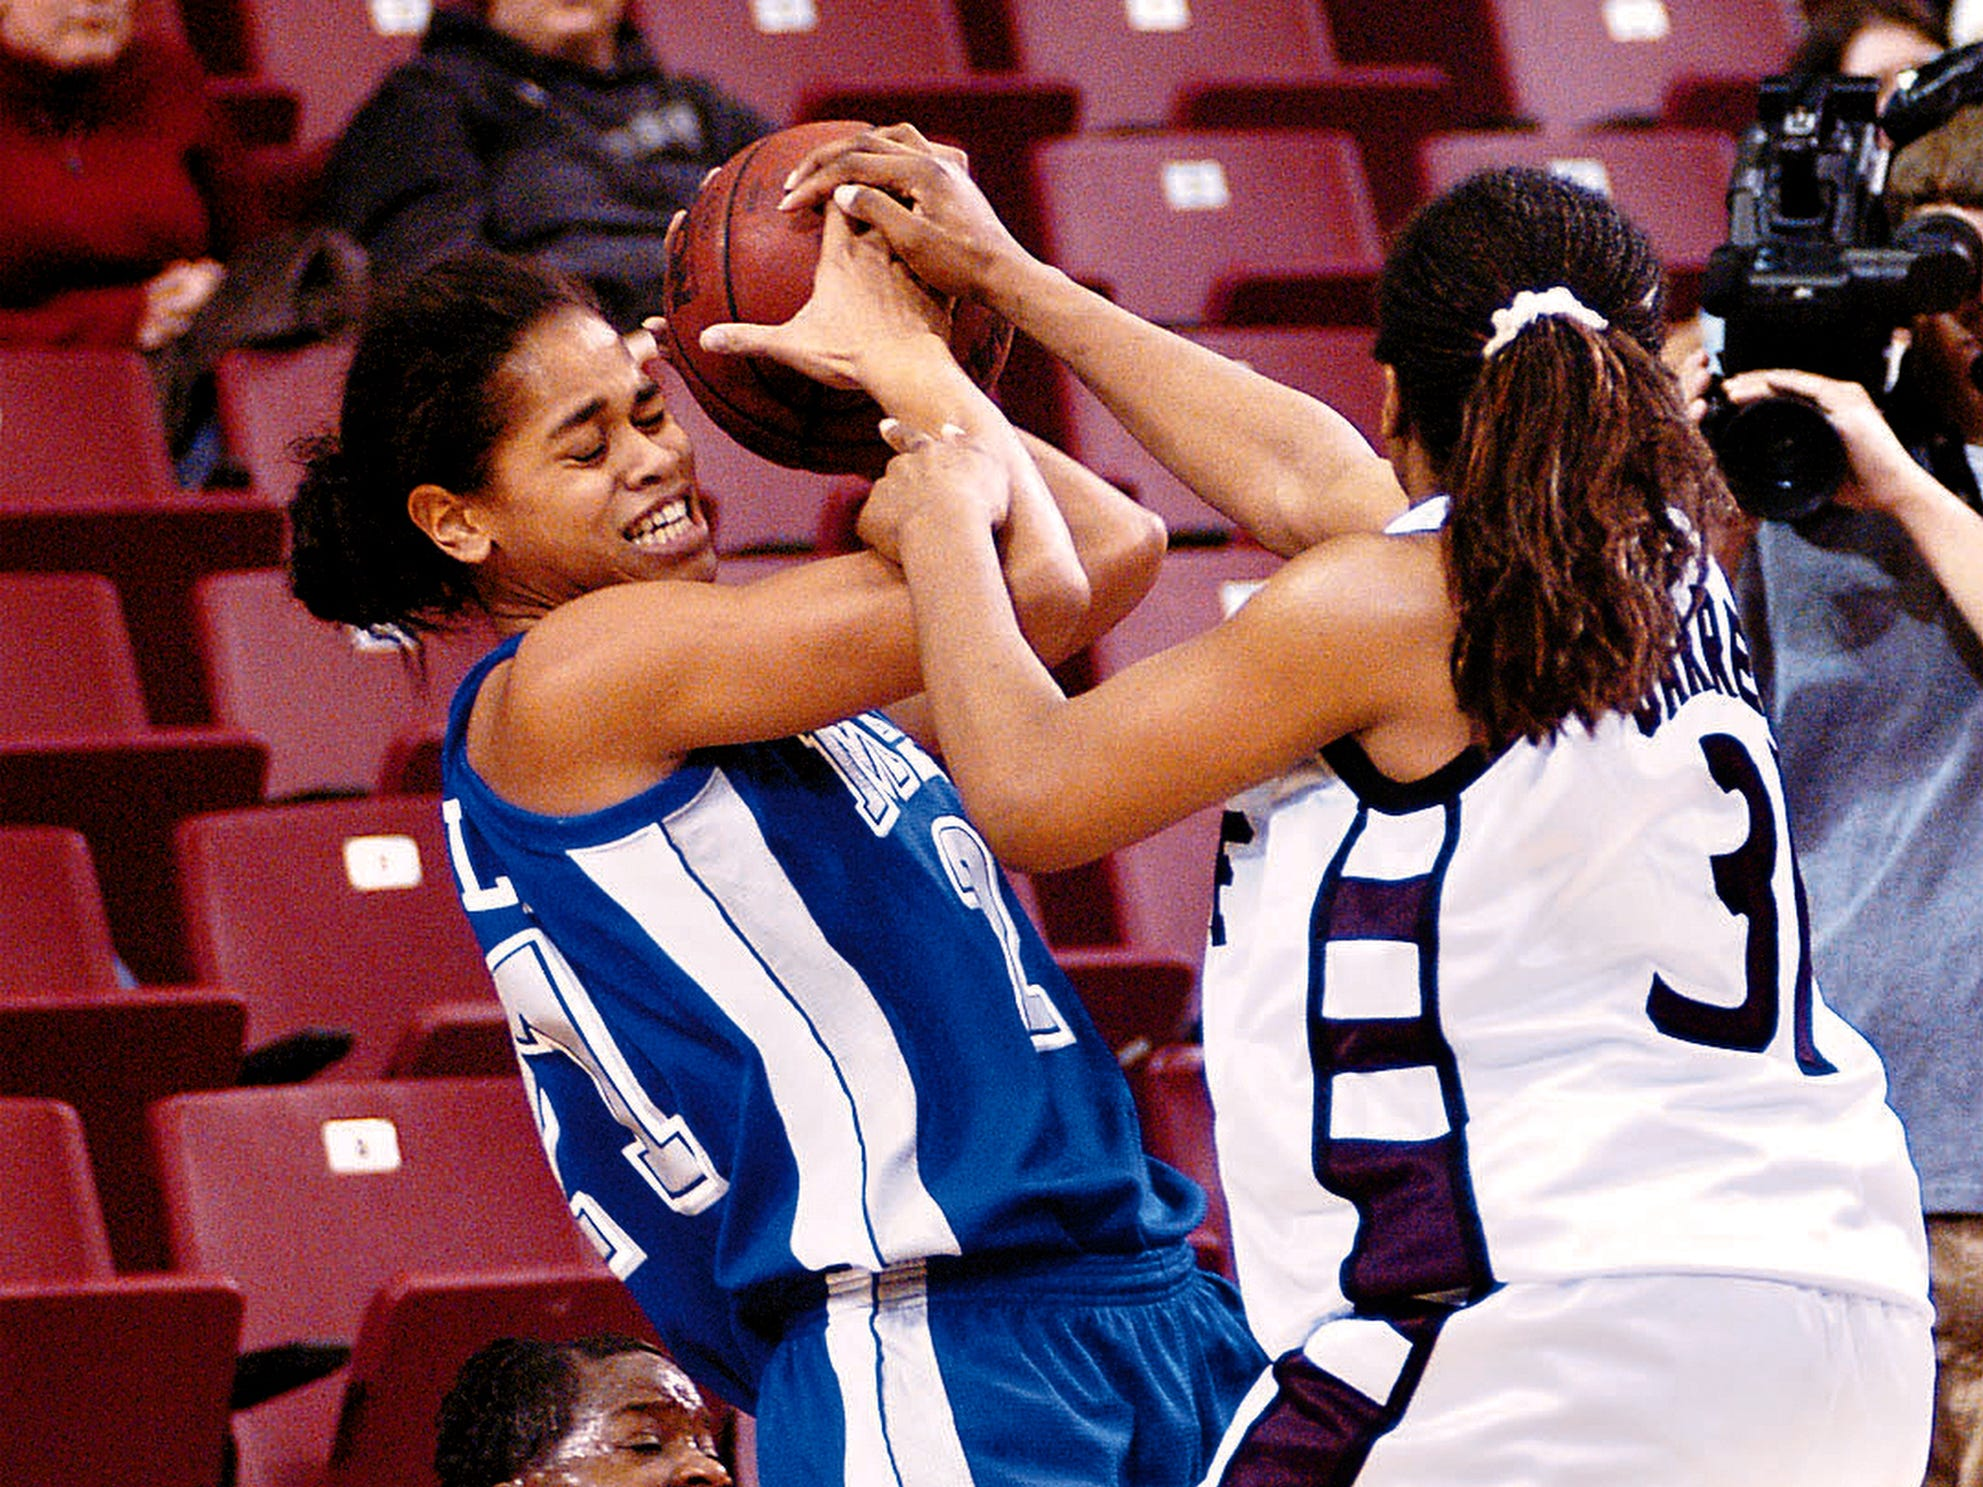 MTSU' Tia Stovall fights for a ball during a game.